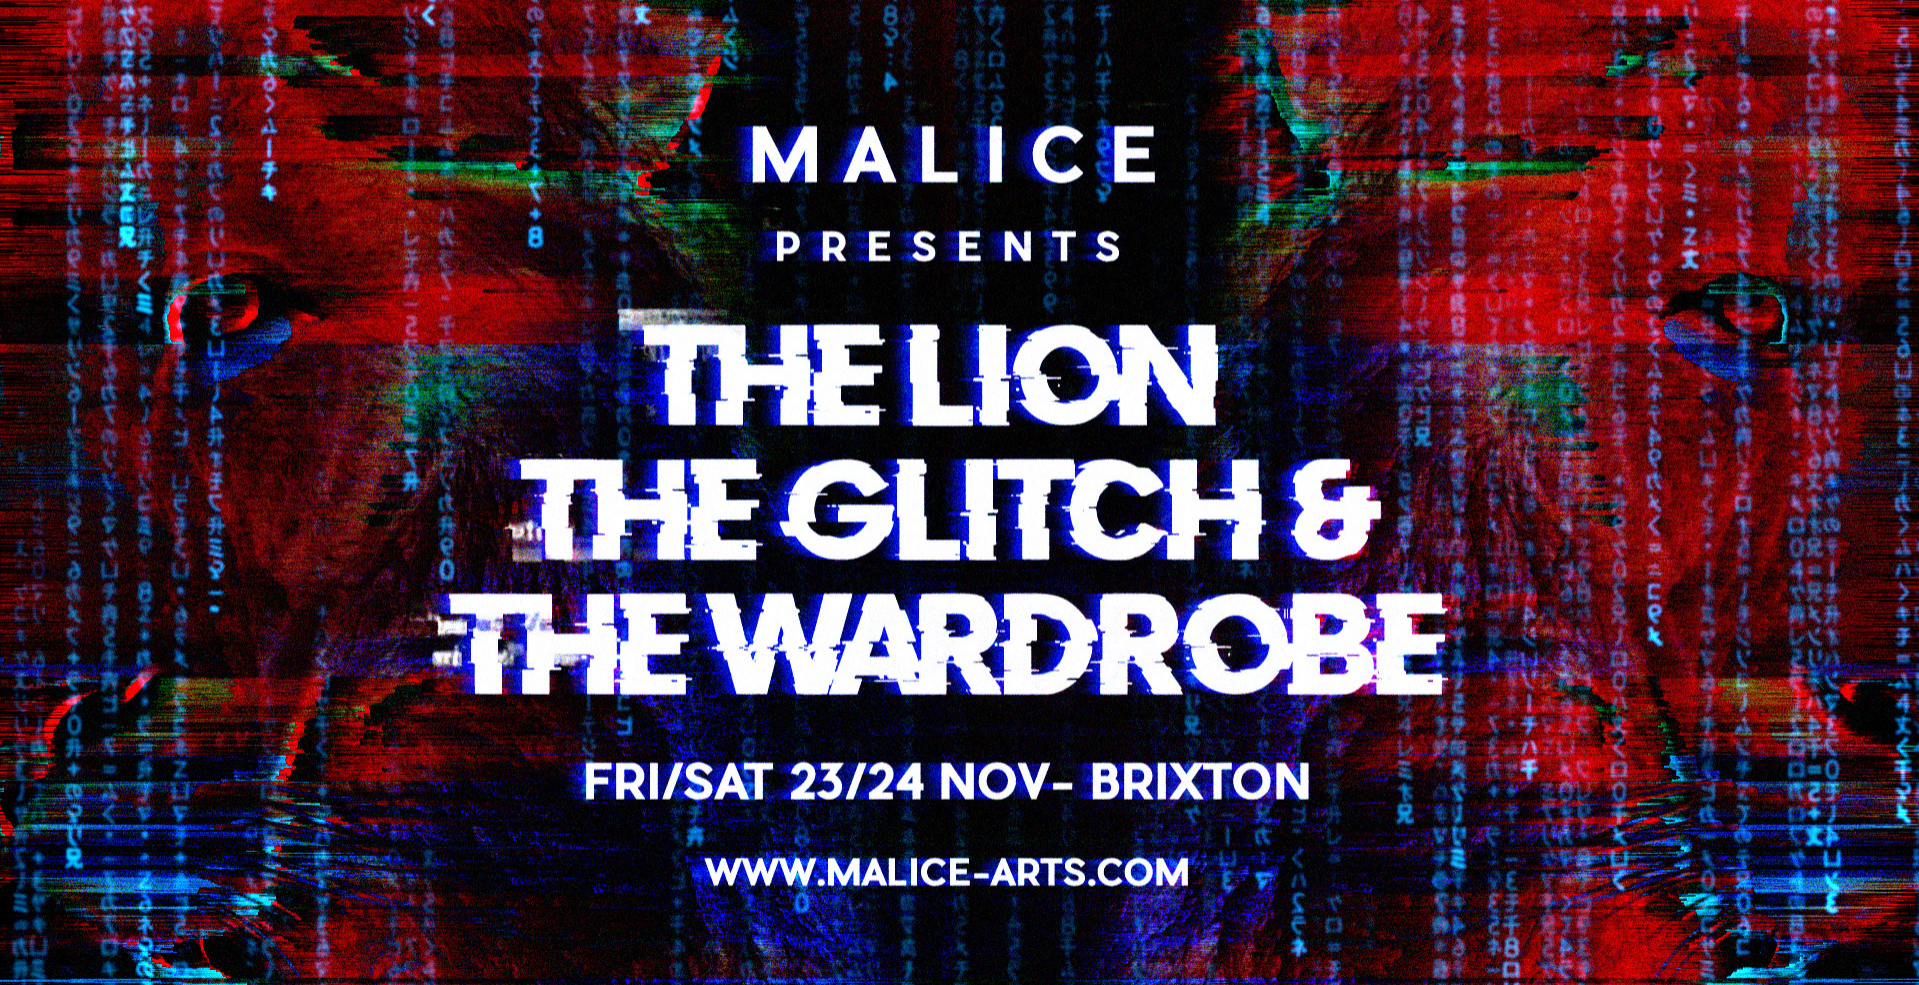 Malice presents: The Lion, The Glitch & The Wardrobe